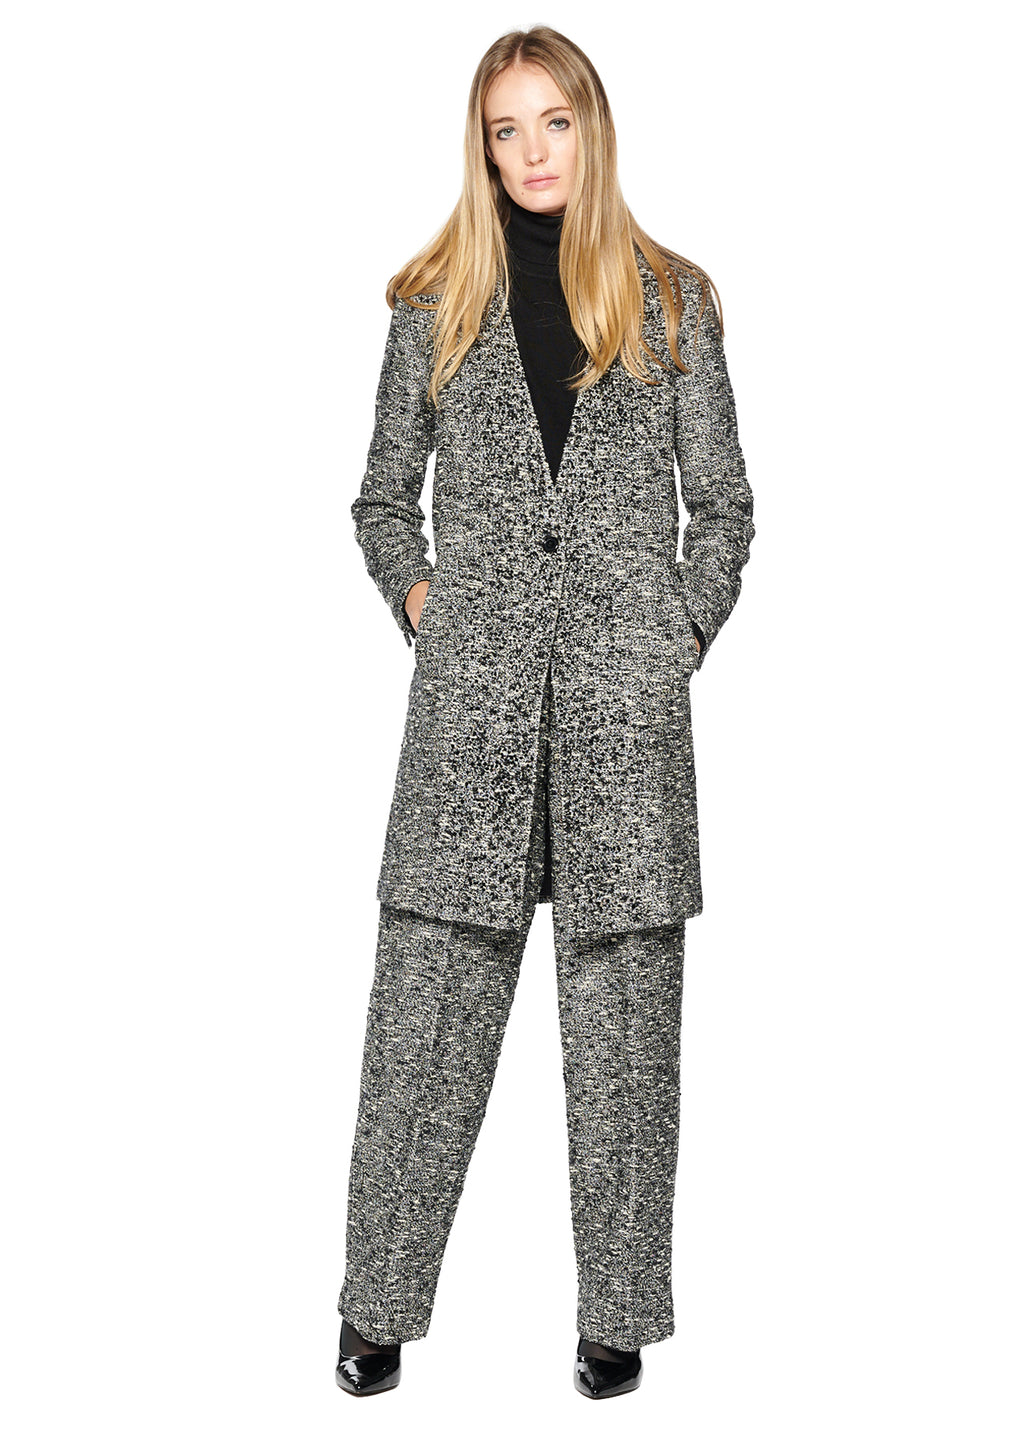 SPARKLE TWEED V-NECK COAT WITH CRYSTALS - Women's Jackets & Coats - Libertine